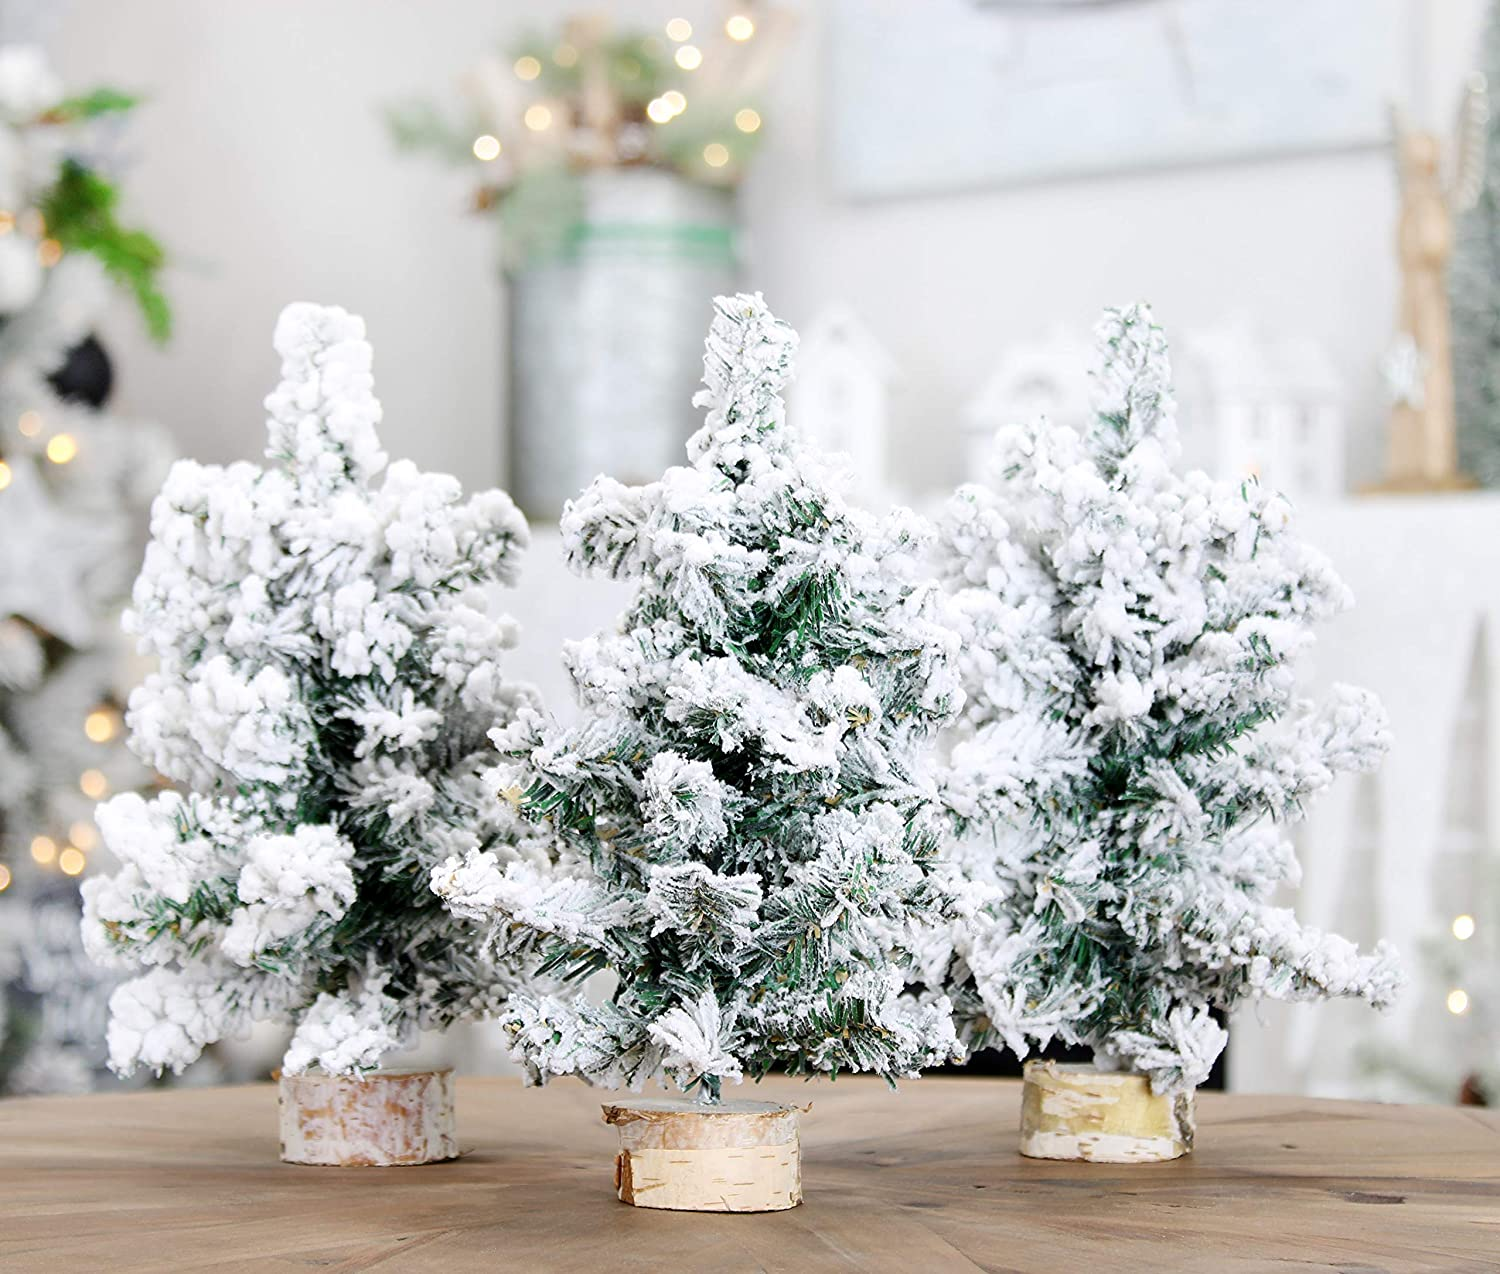 AuldHome Mini Christmas Trees (3-Pack, 10-Inch, Flocked); Canadian Pine Greenery Tabletop Holiday Decor